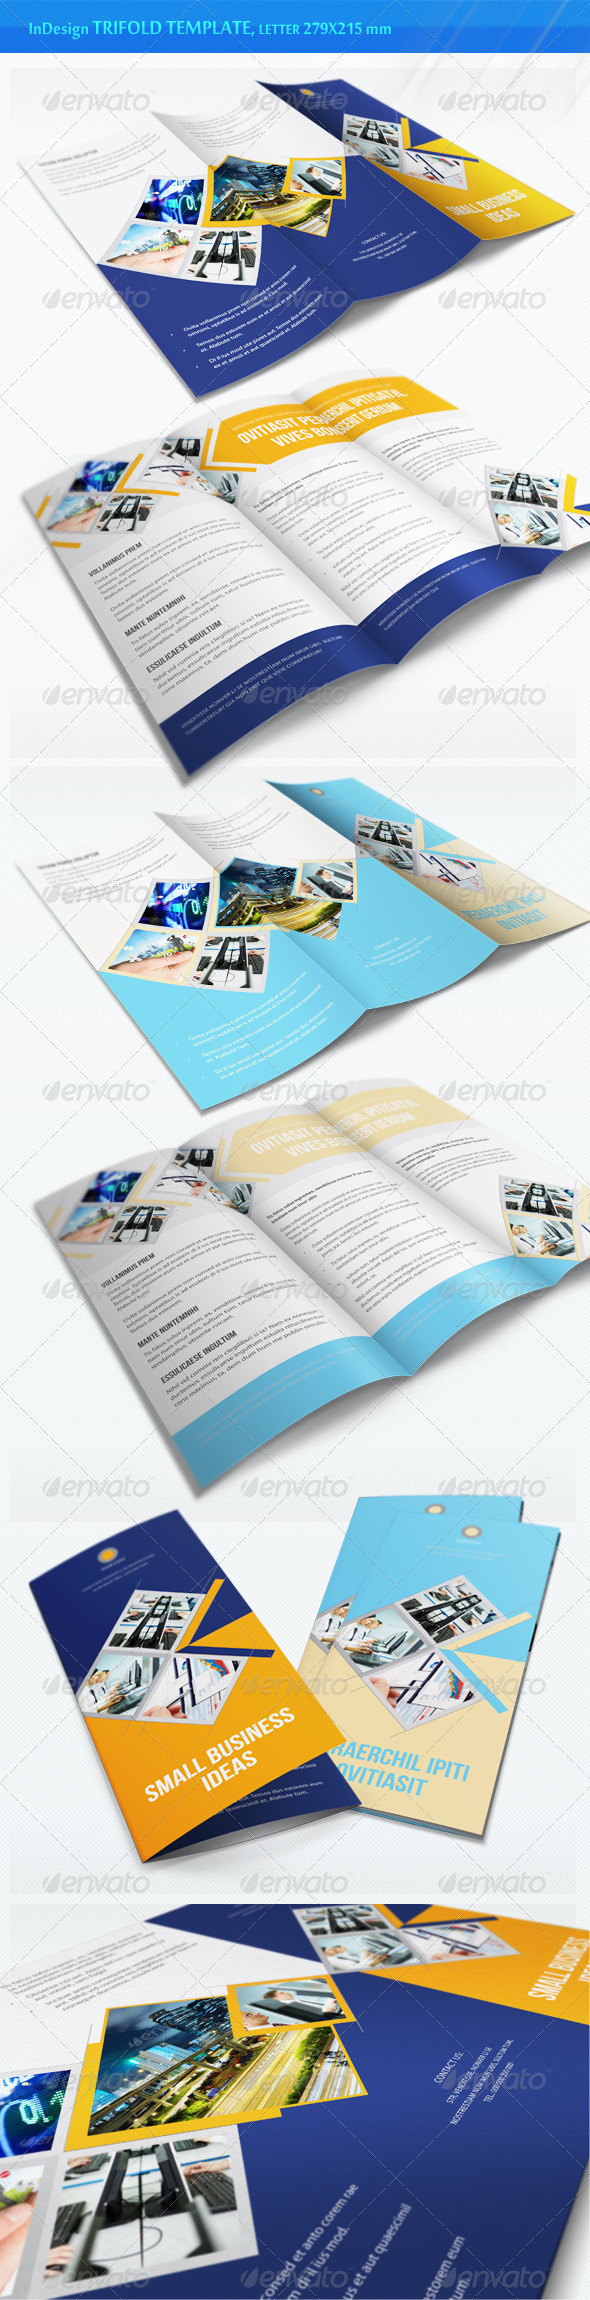 GraphicRiver Business Trifold Brochure v5 3365163